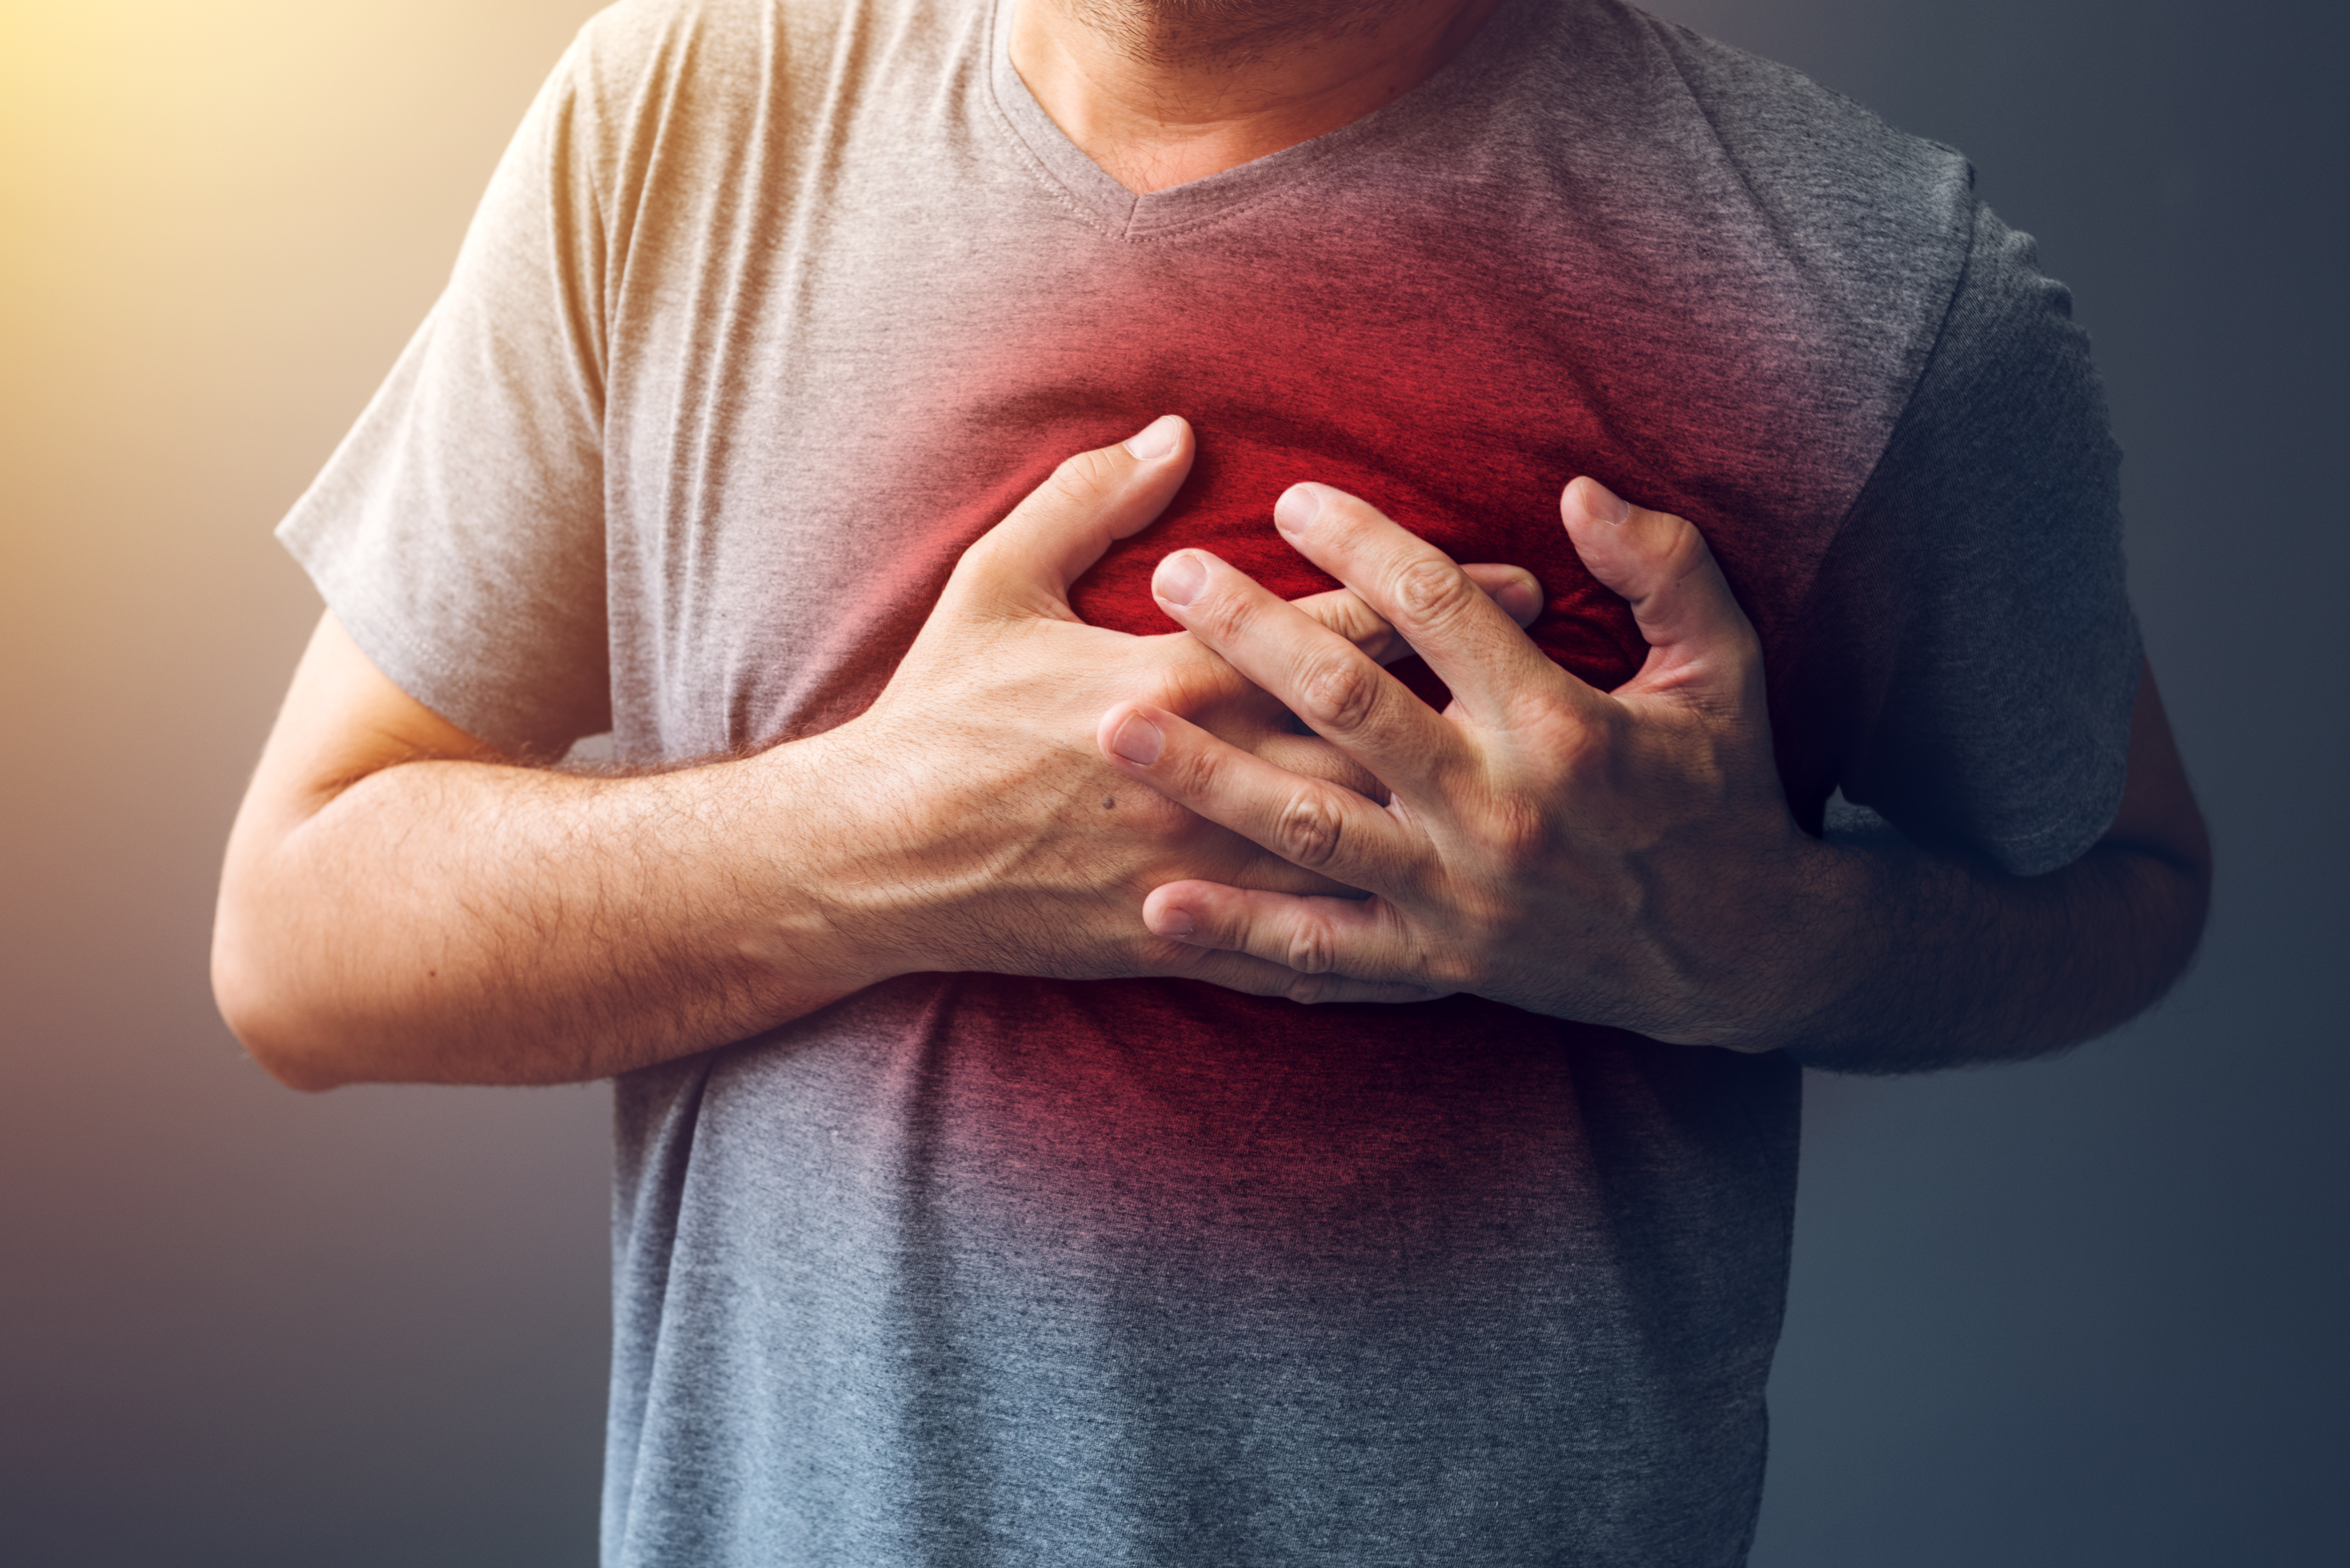 How Not to Miss Warning Signs of Future Heart Attack